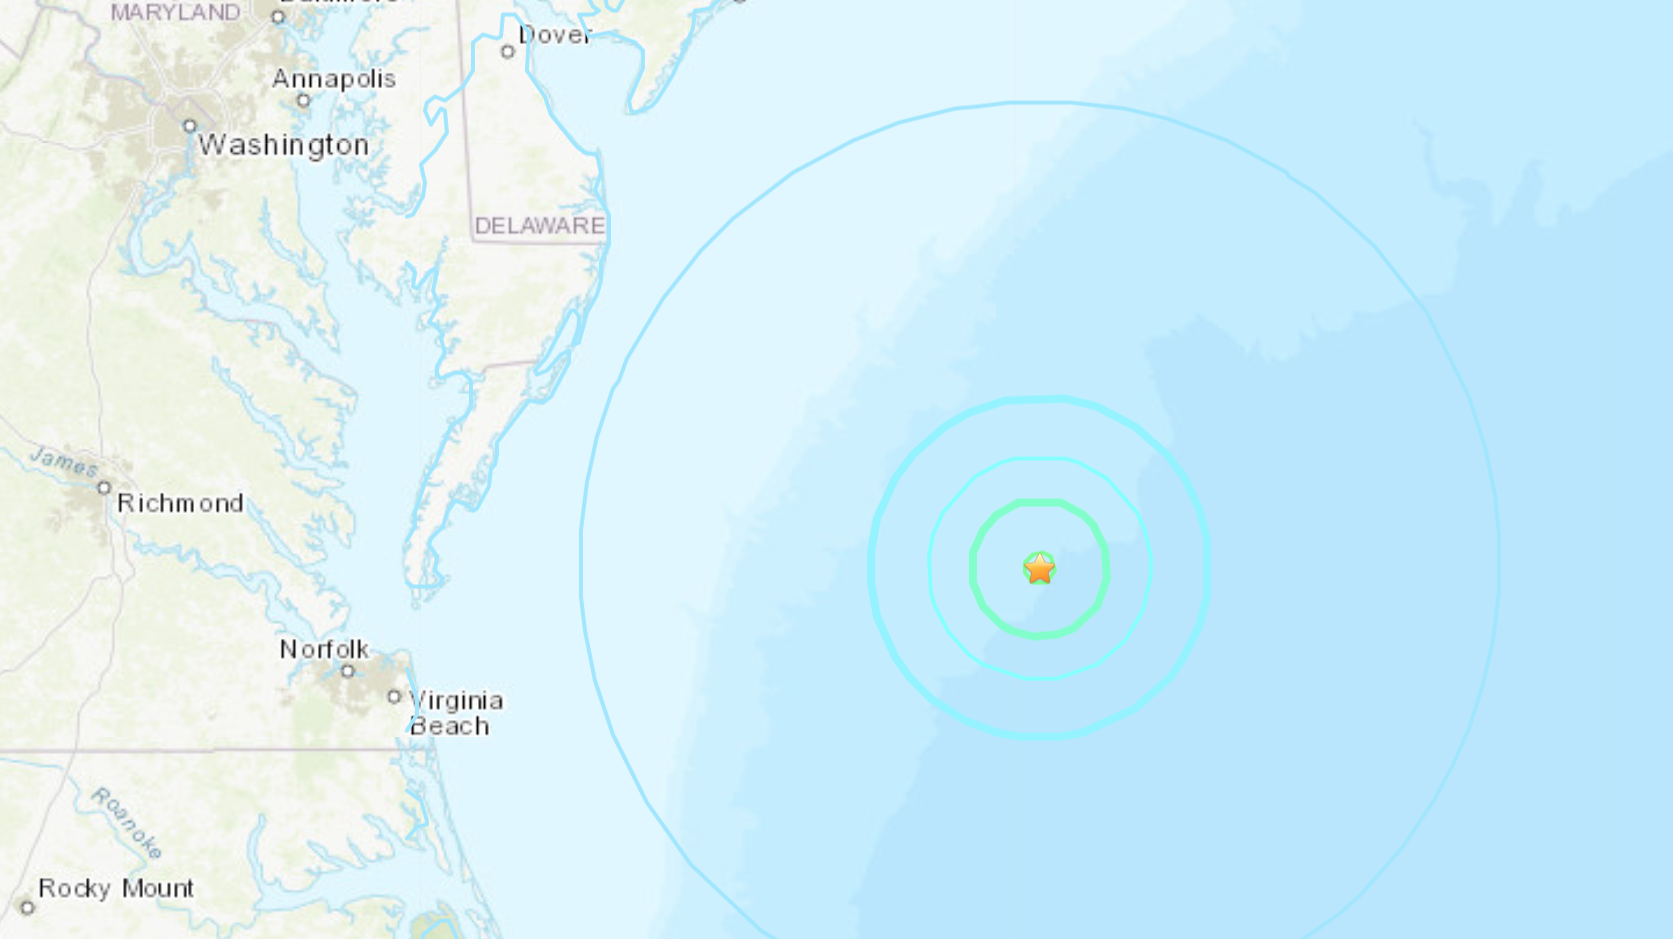 Ocean City earthquake: What you need to know after Tuesday's temblor